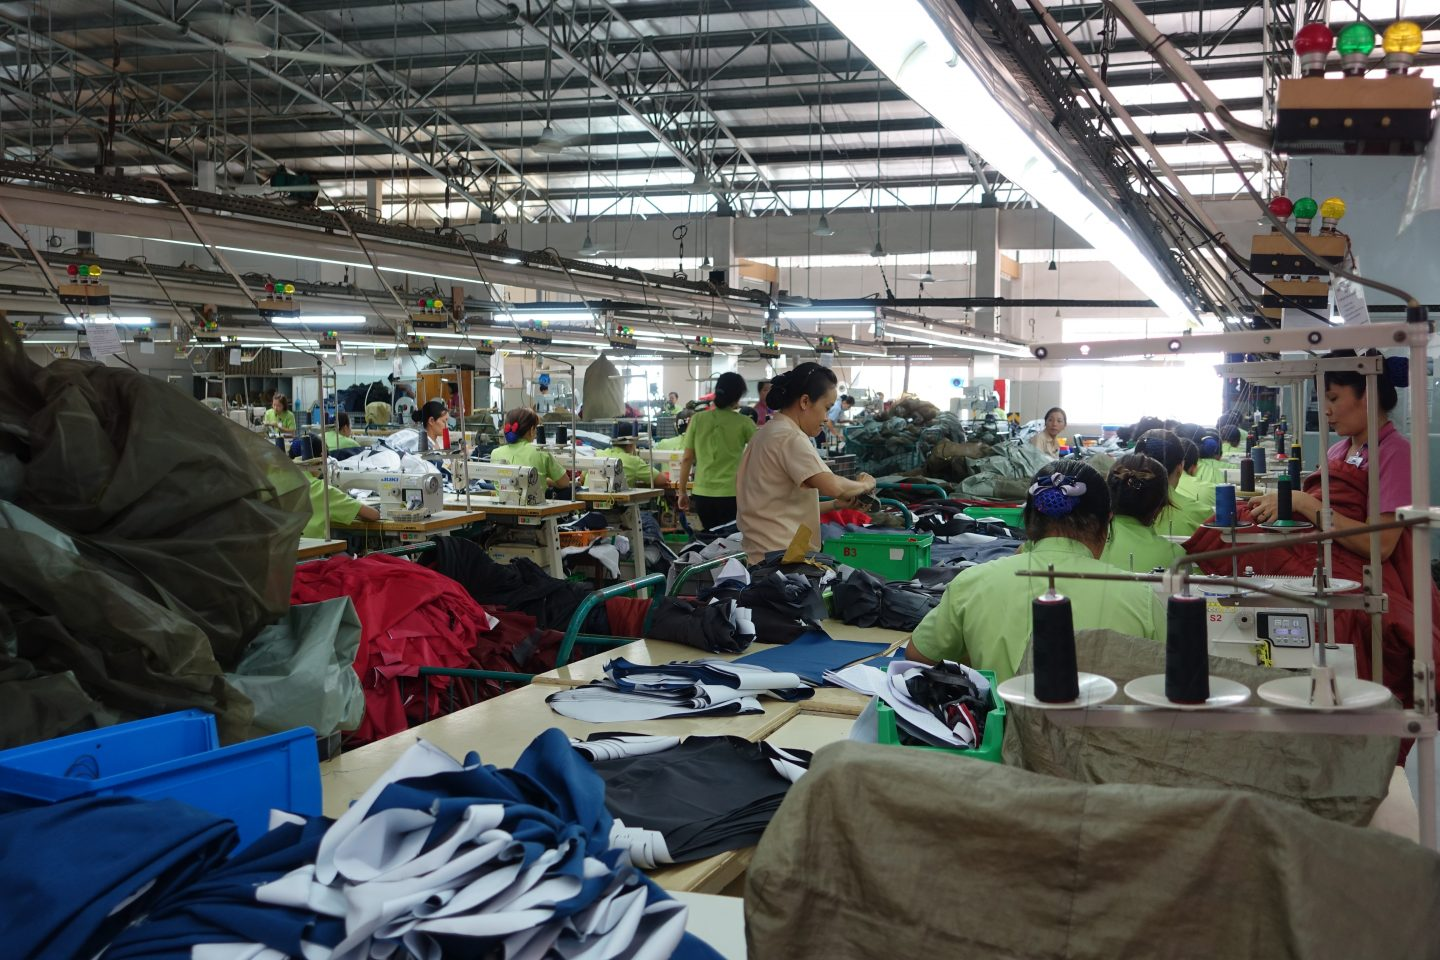 tatonka open factory tour sewing